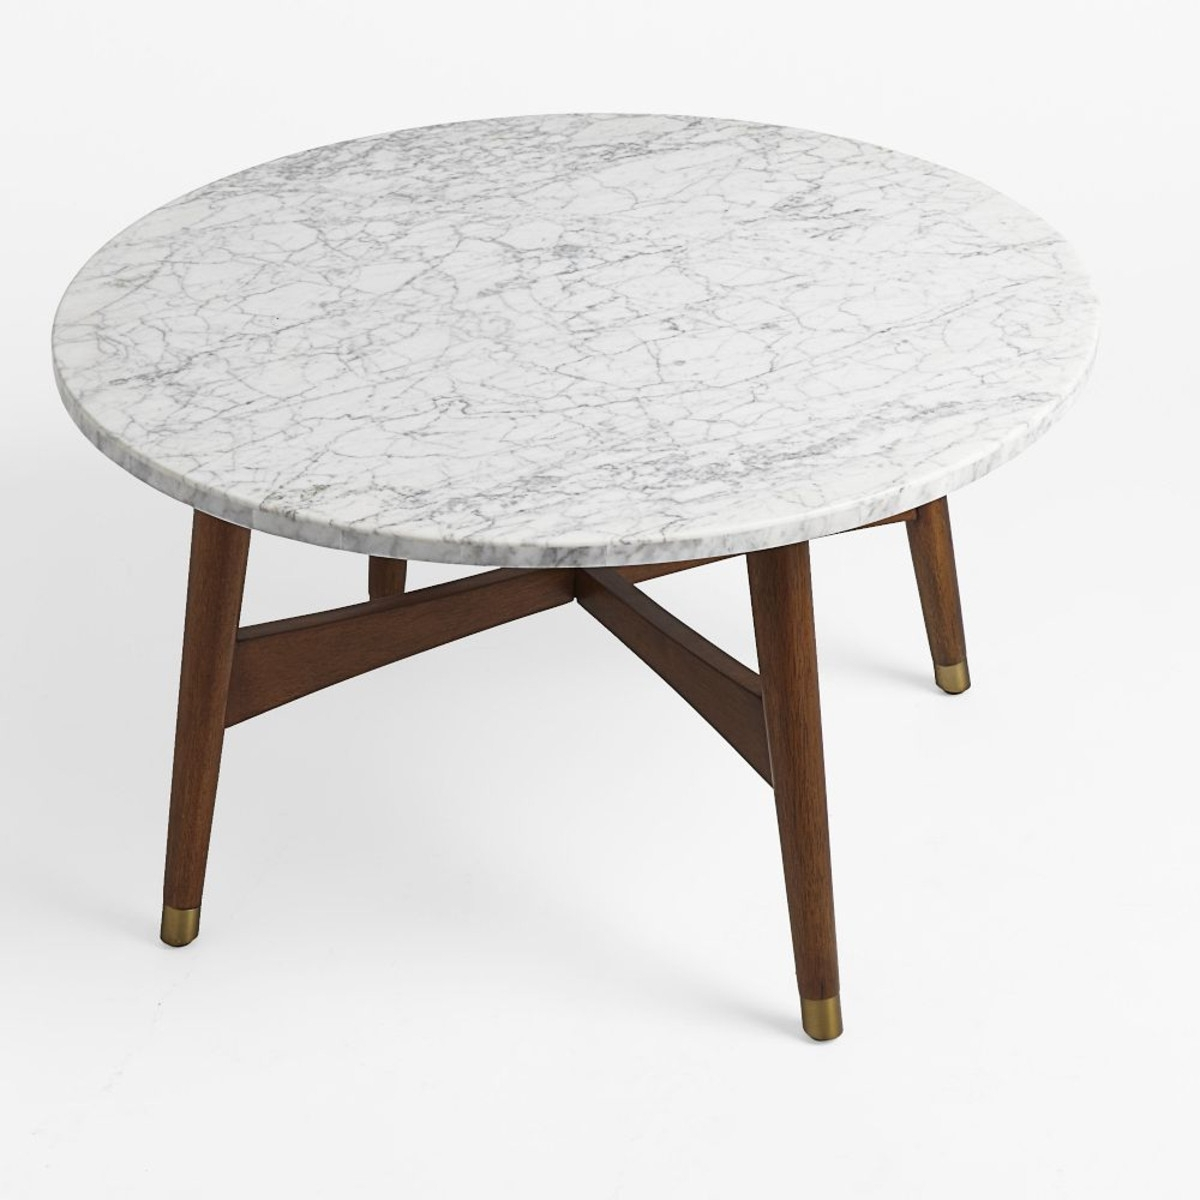 Decoration In Marble Round Coffee Table With Coffee Table Smart Intended For Well Liked Smart Large Round Marble Top Coffee Tables (View 14 of 20)